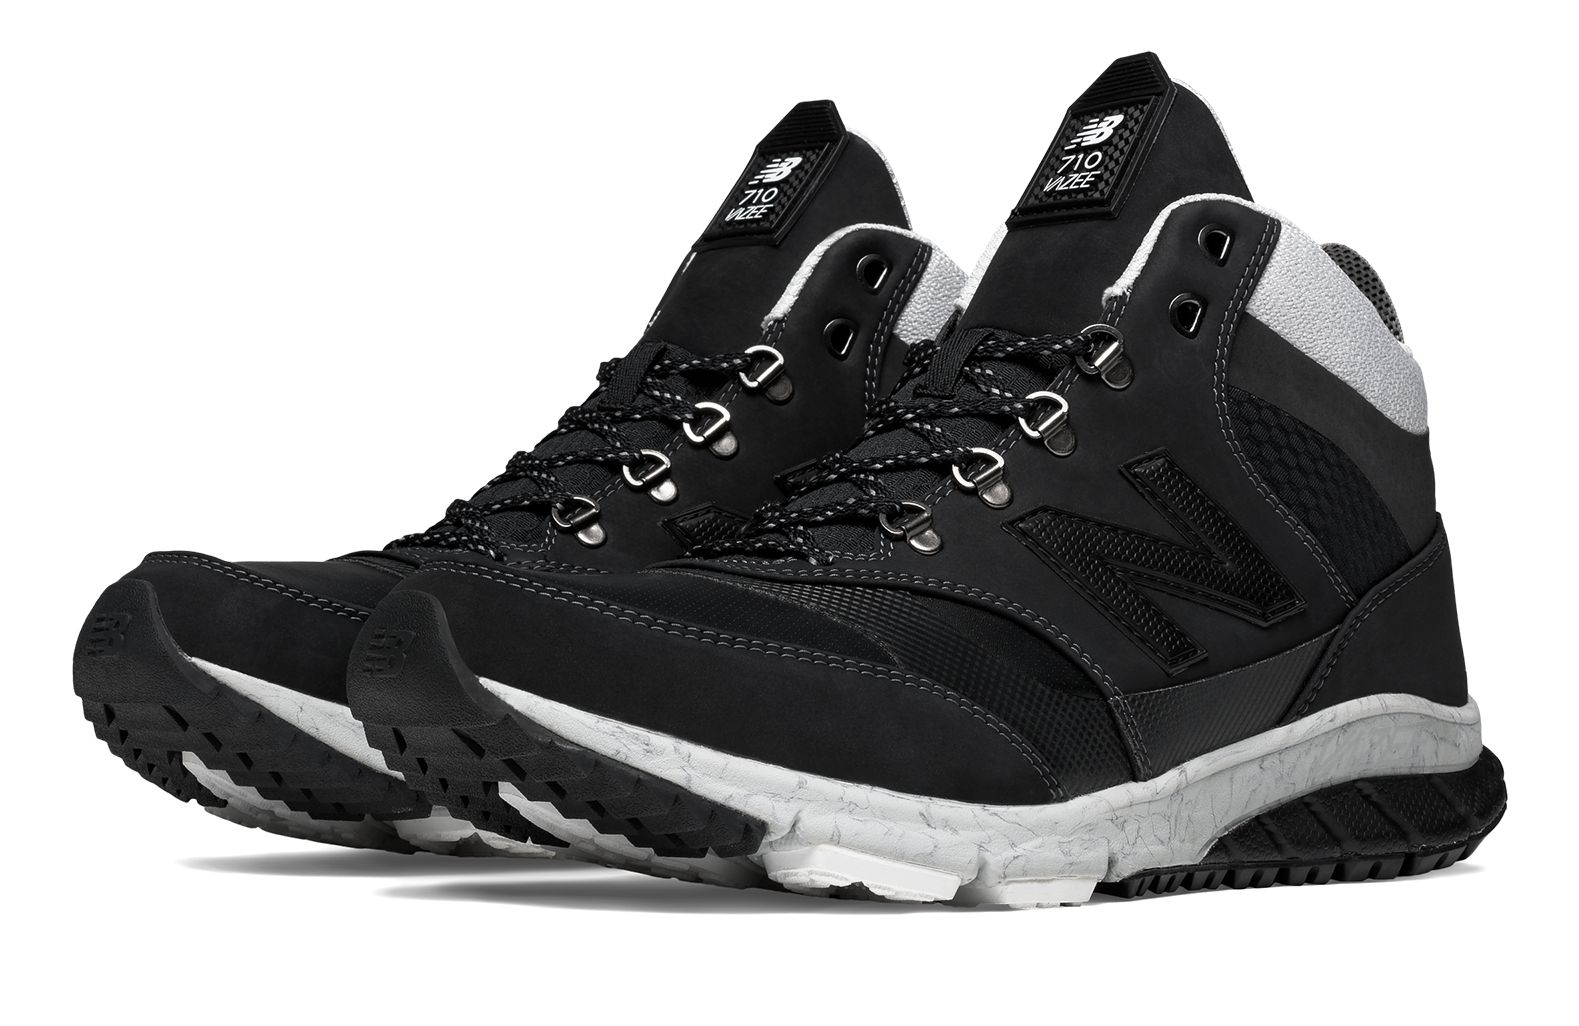 New Balance : 710 Vazee Outdoor : Men's Footwear Outlet : HVL710AE